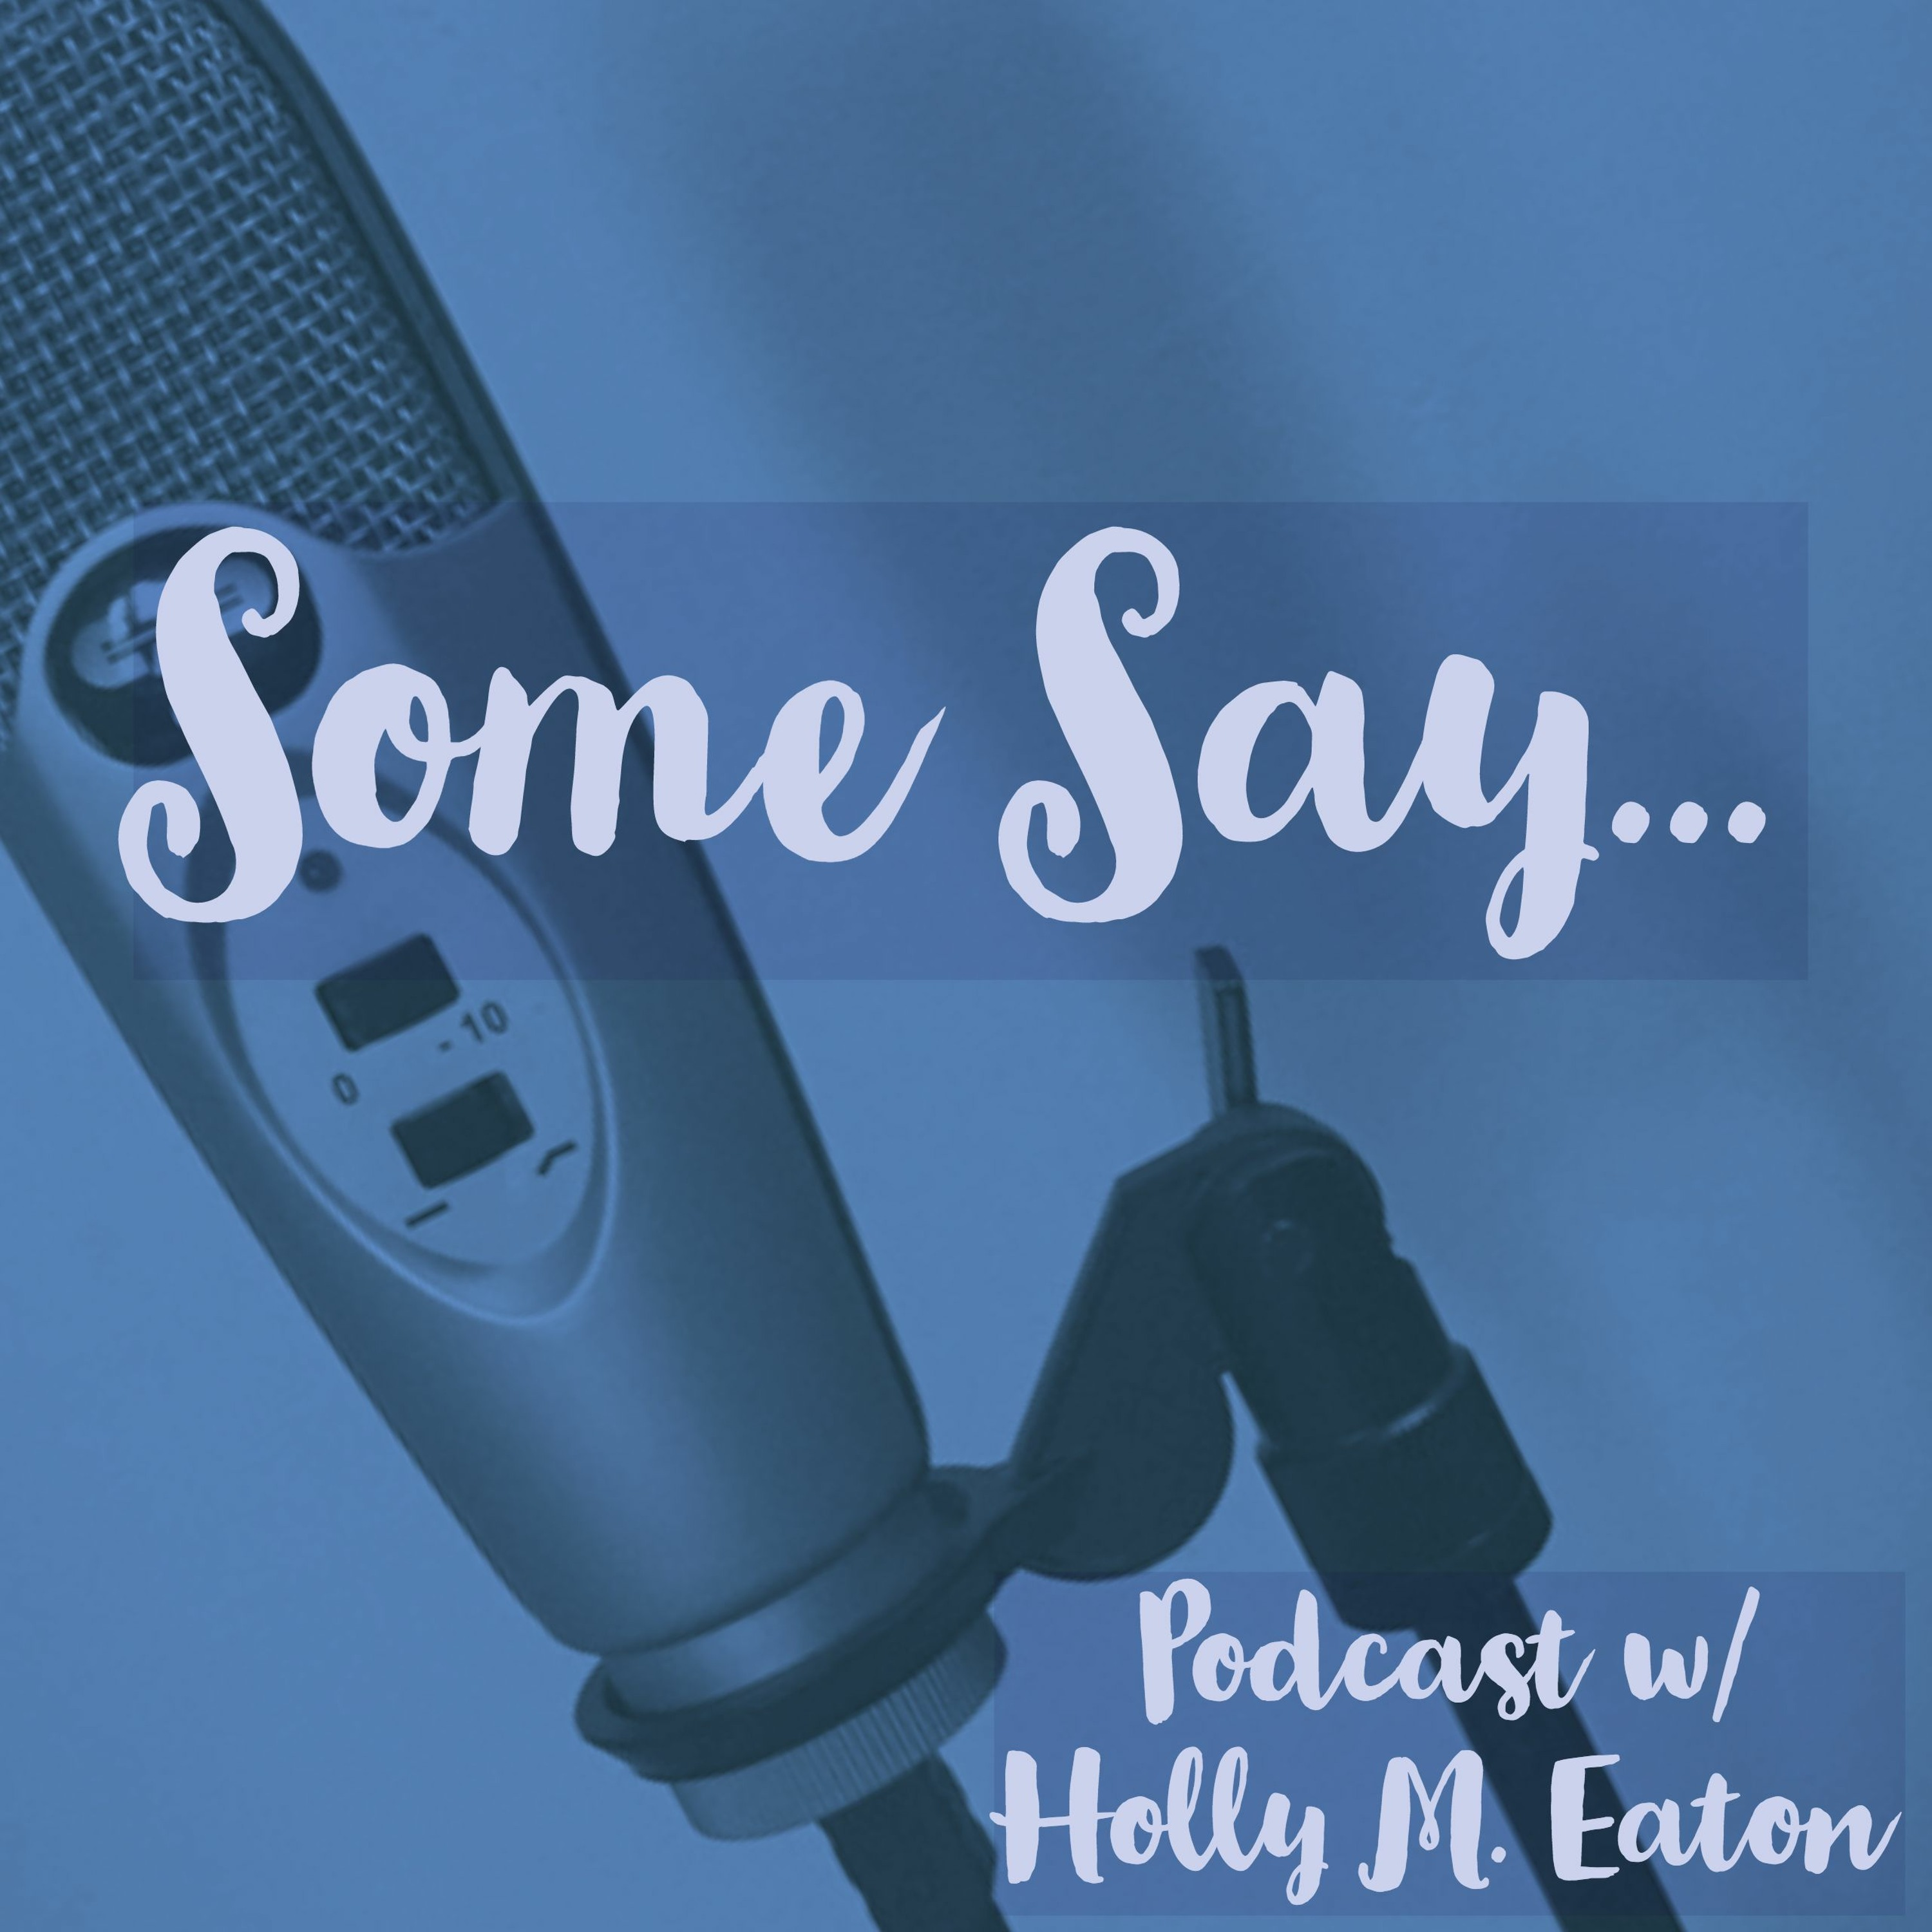 Some Say... Podcast! Ep. 6: Martha Cooley